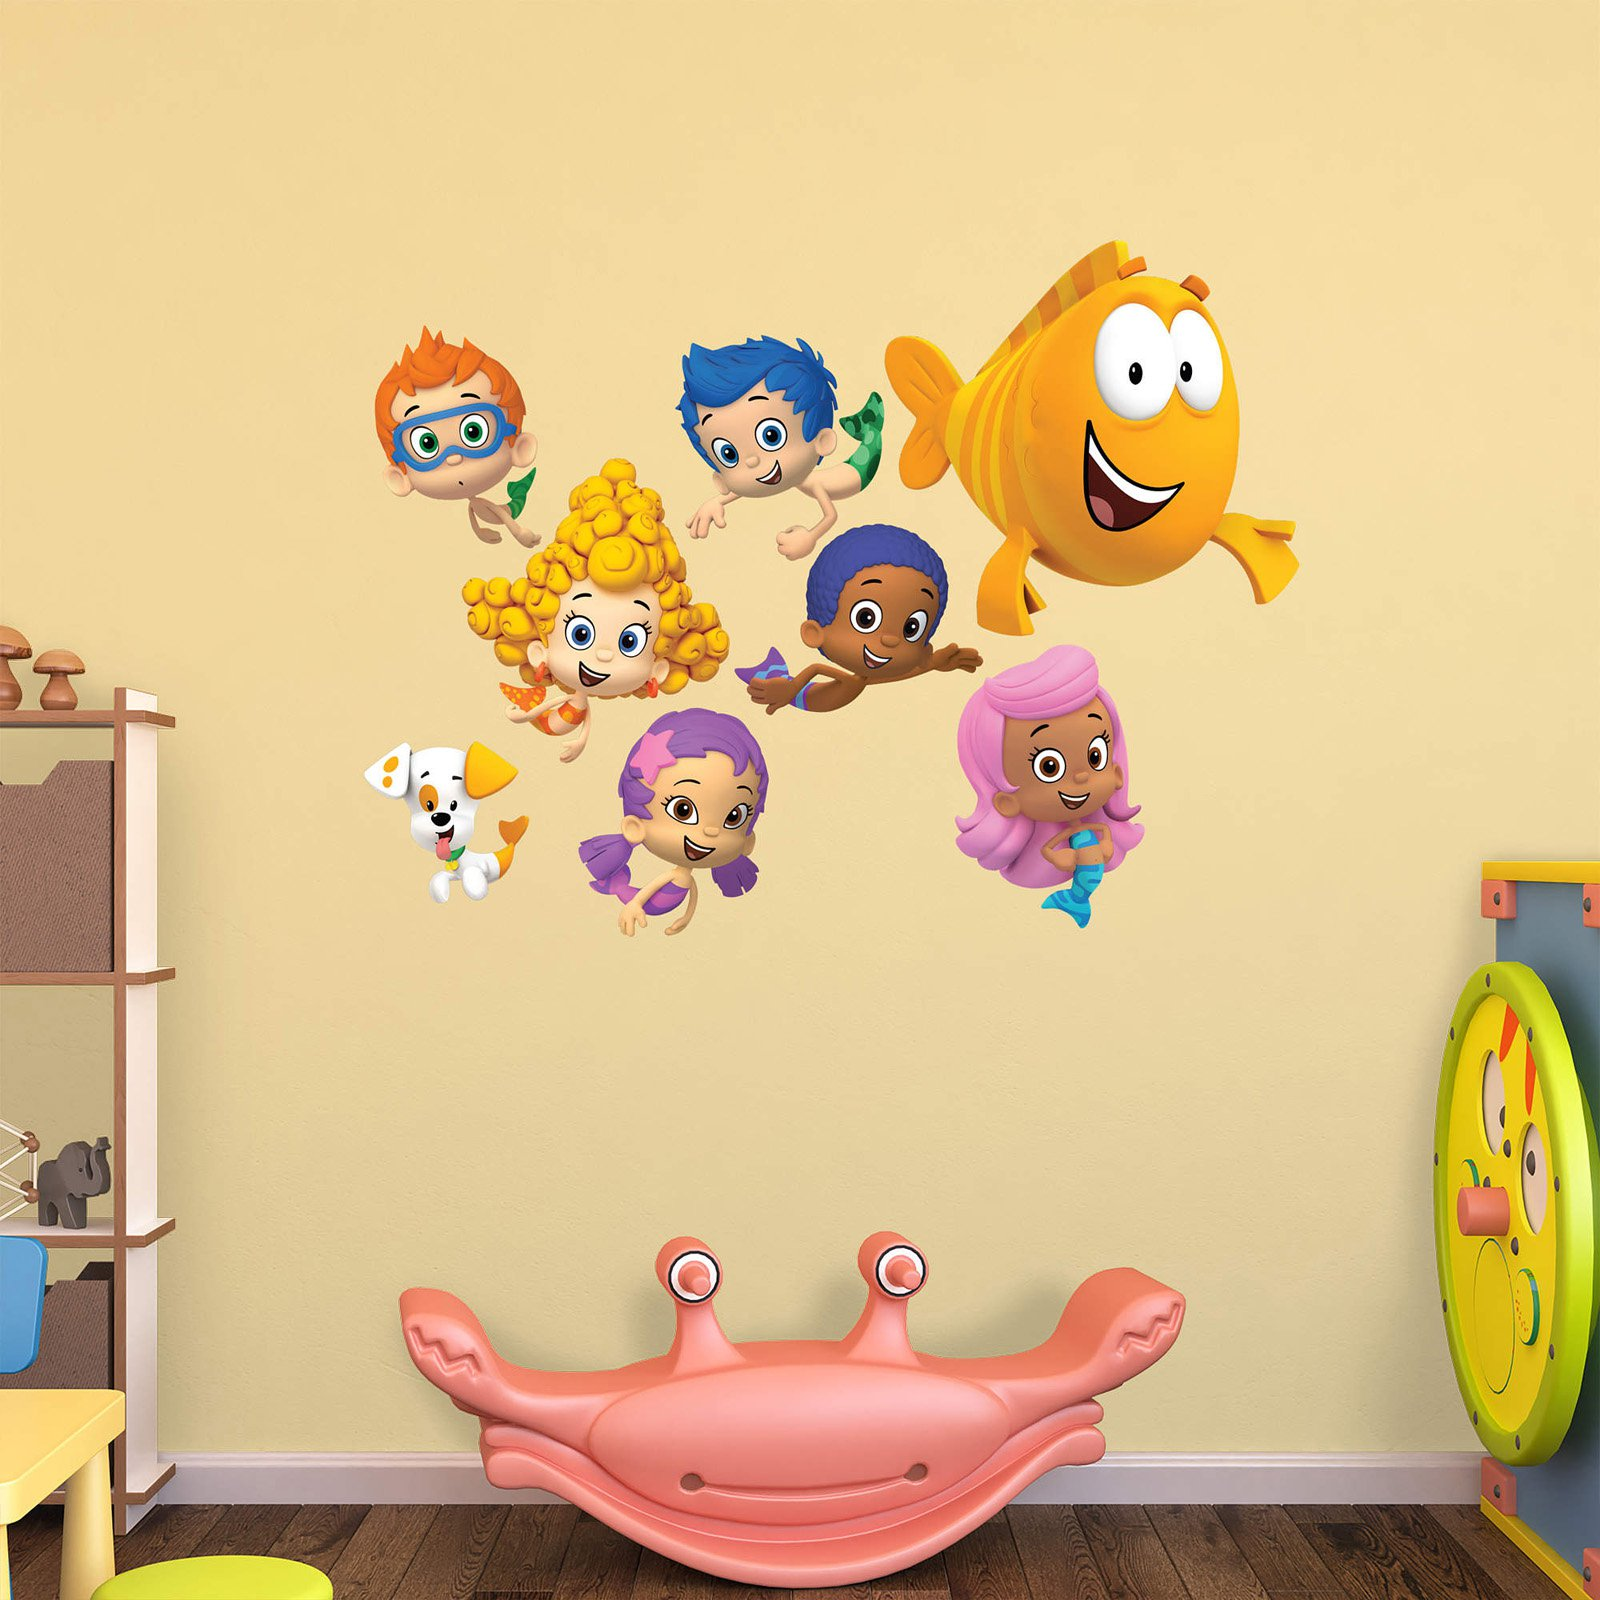 Fathead Nickelodeon Bubble Guppies Wall Decal Collection Disney